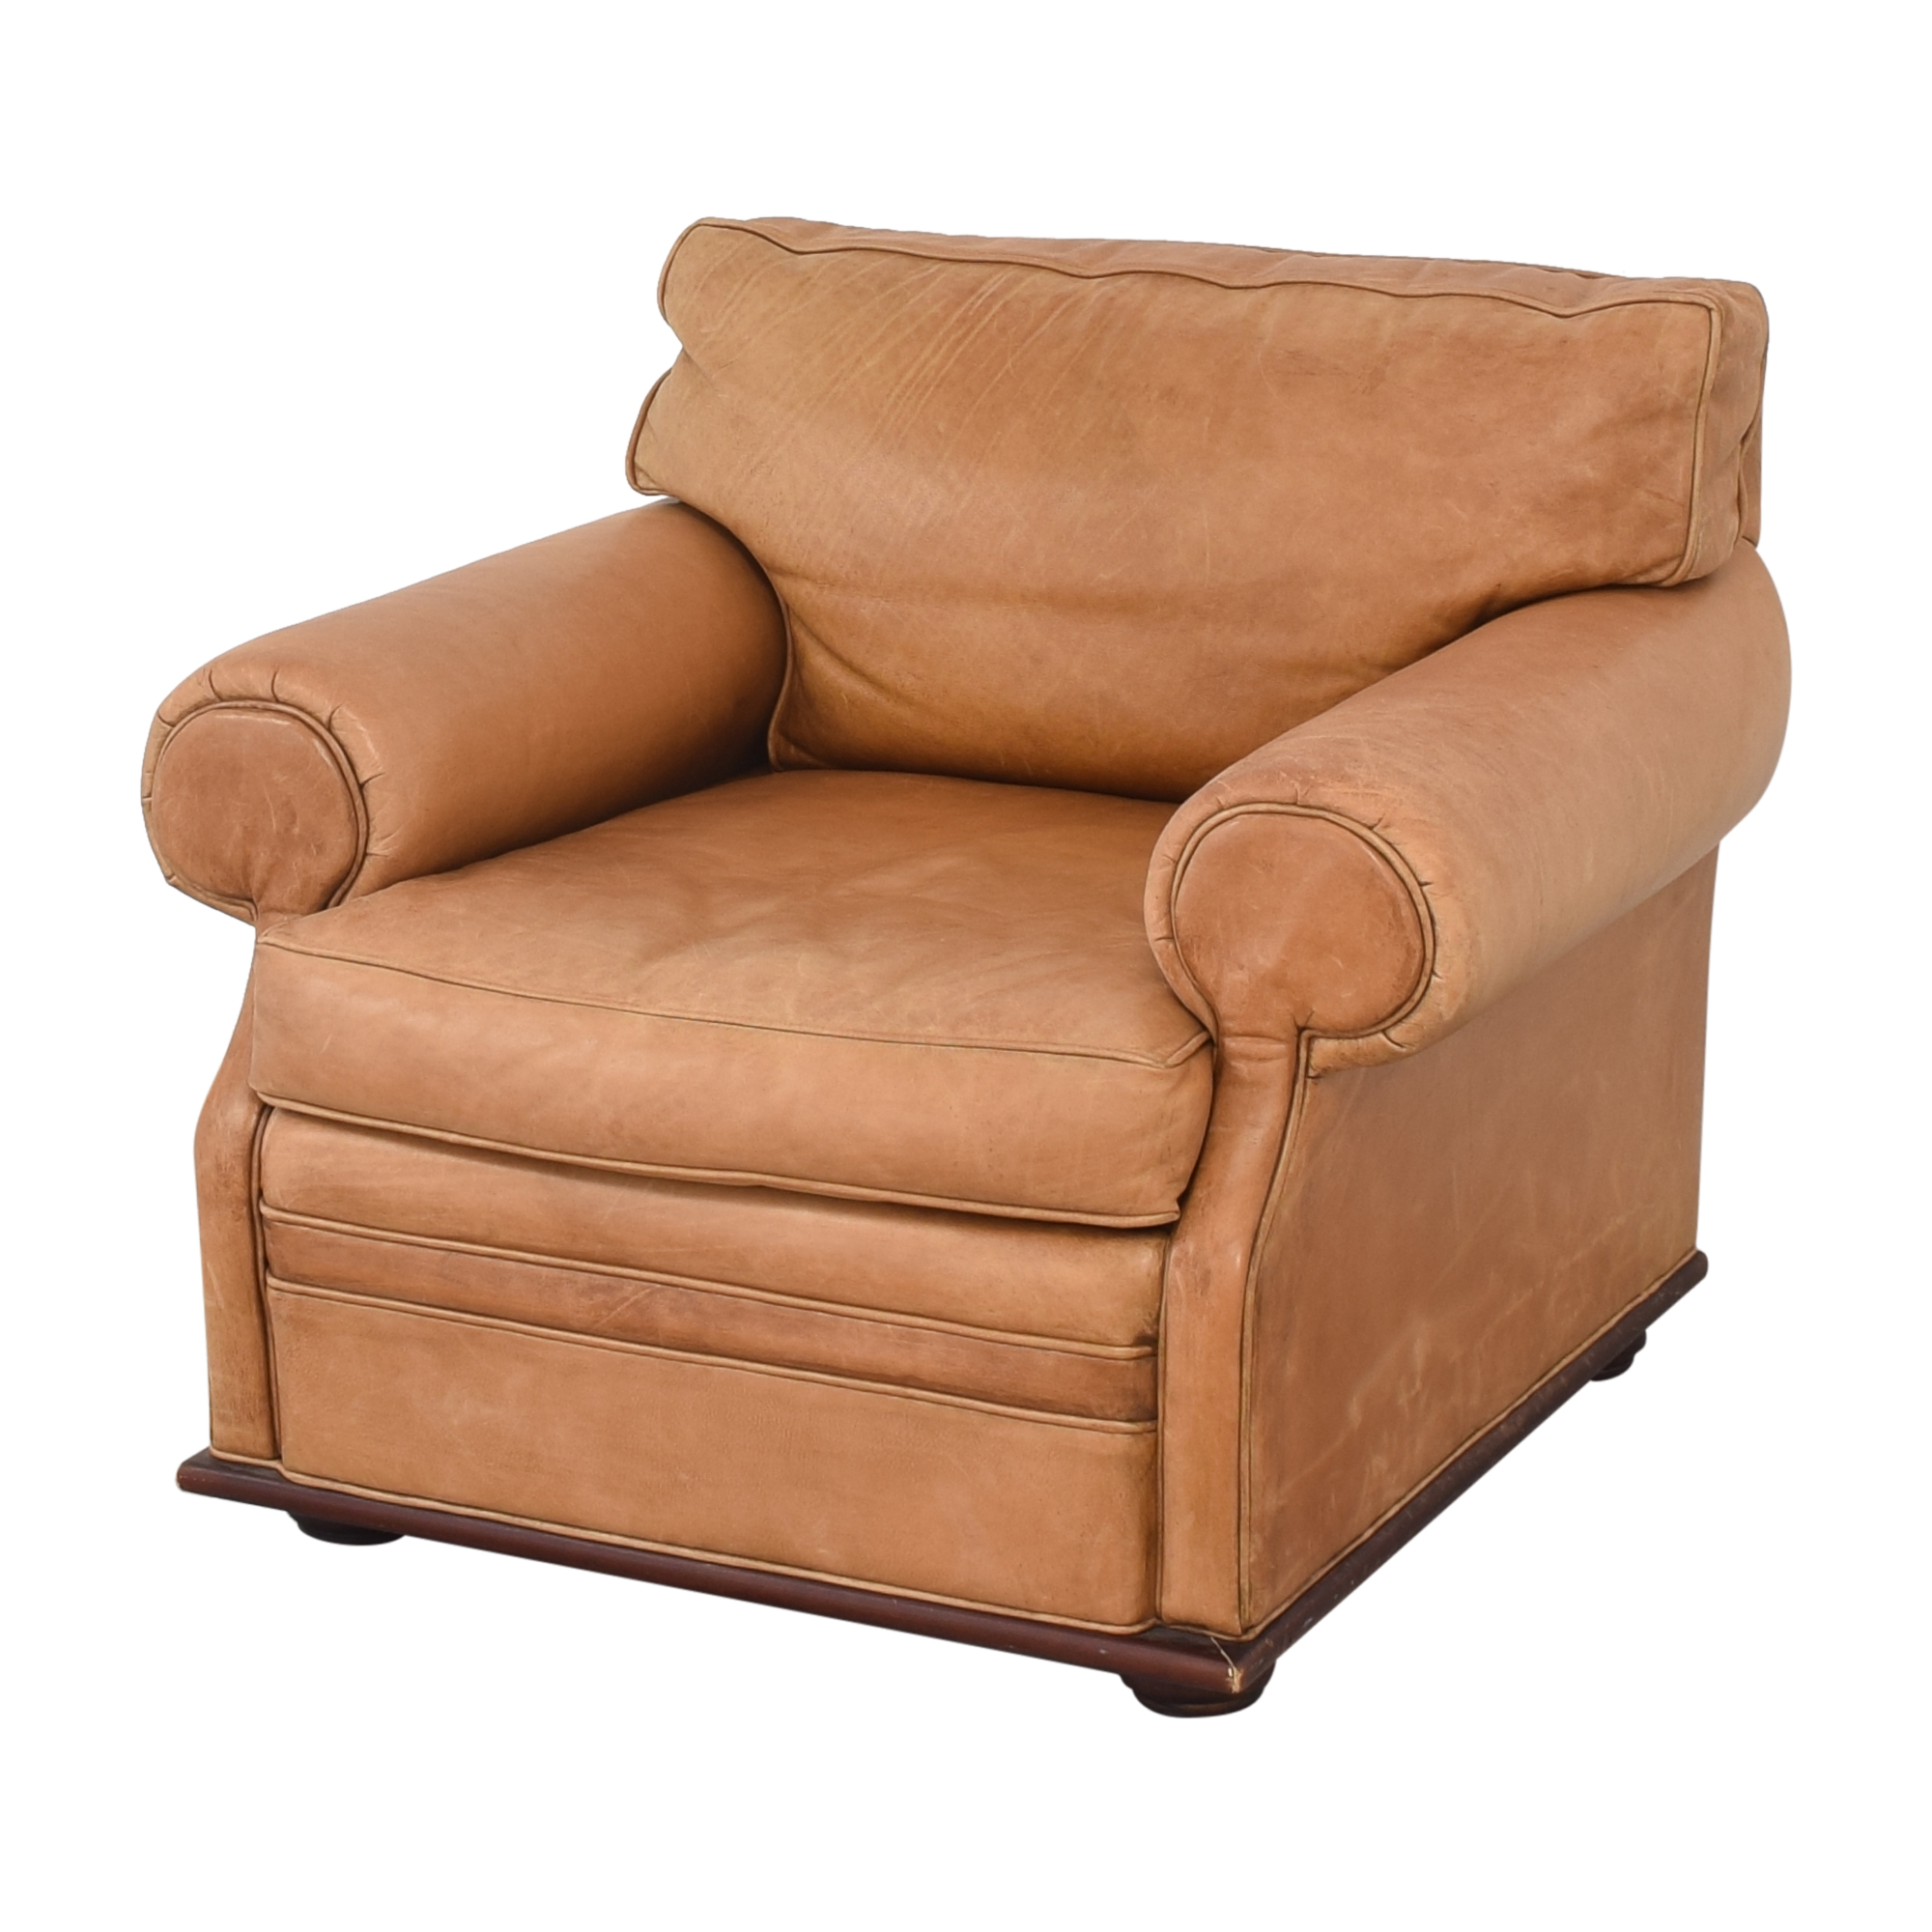 Ralph Lauren Roll Arm Accent Chair / Chairs